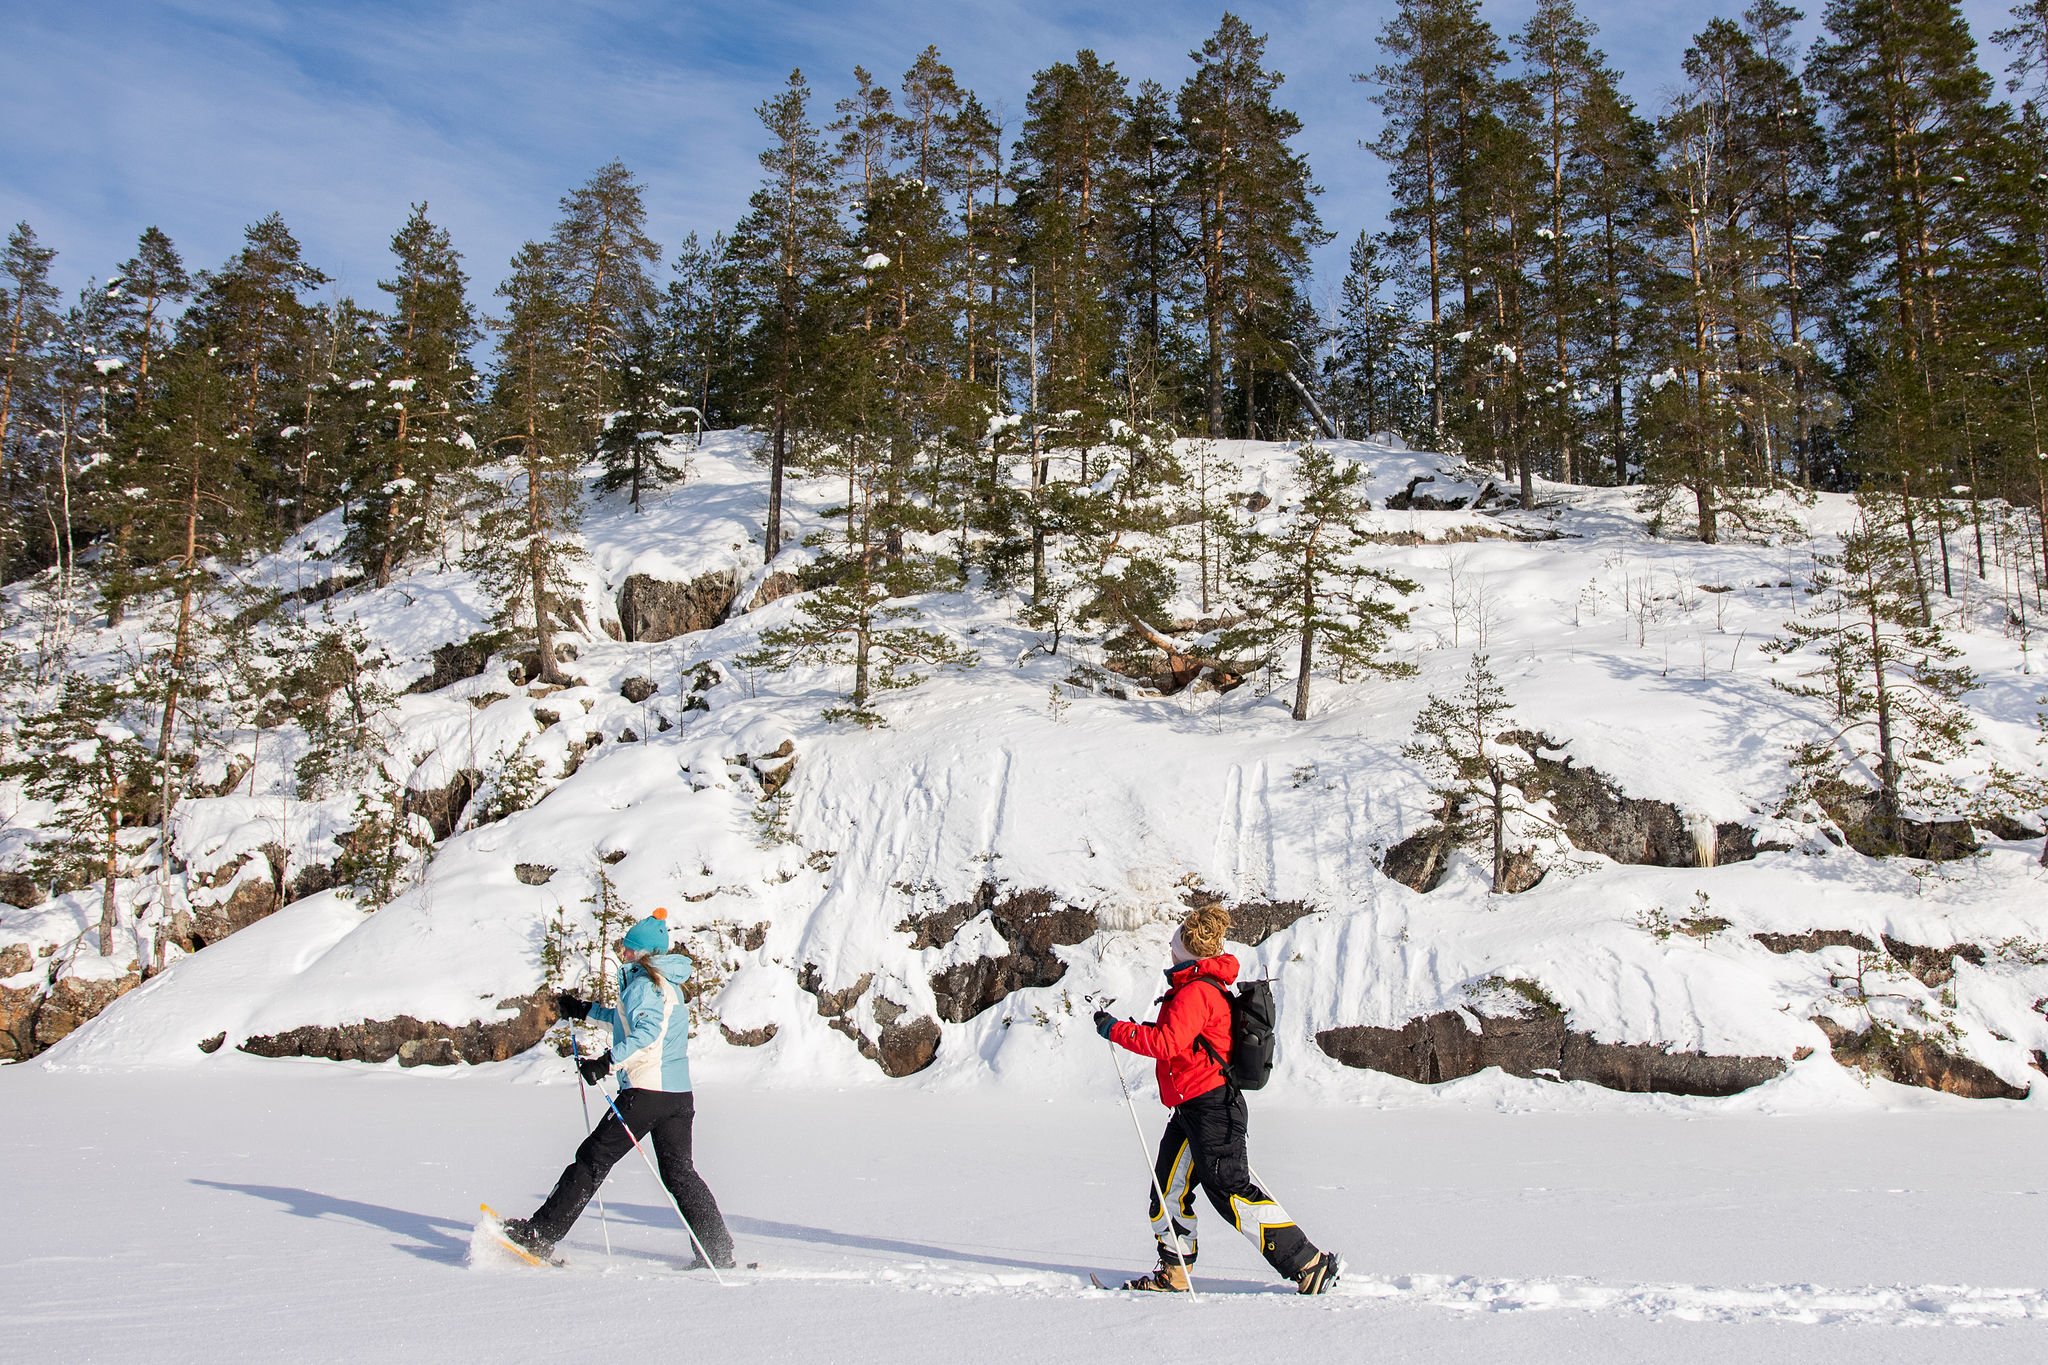 Winter snowshoeing on lake at Lomalehto Cottages in Saimaa, Finland